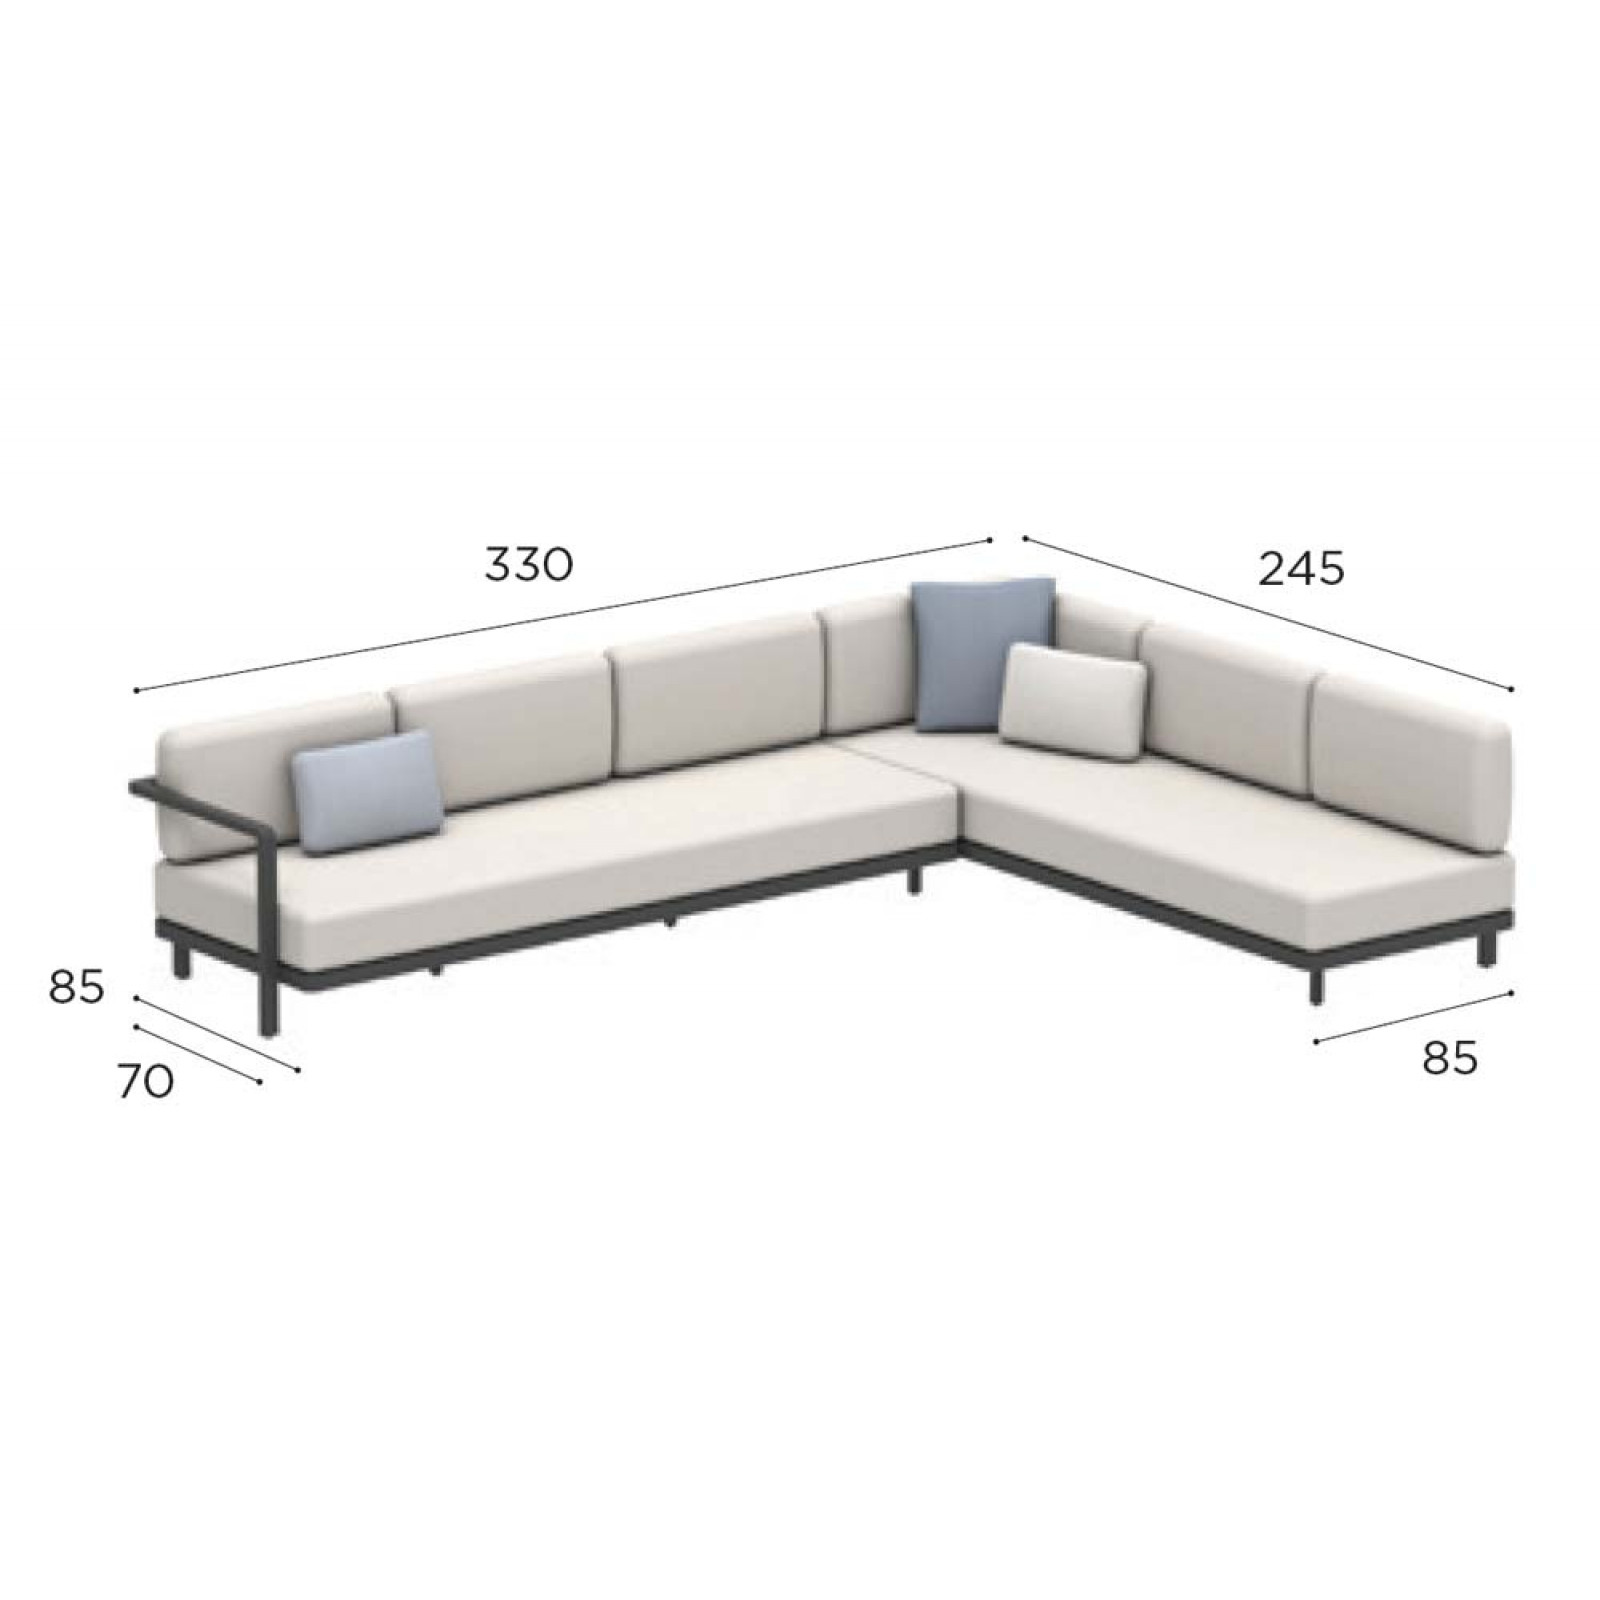 Royal Botania Red Label • Alura Lounge Ecksofa 09 mit Ablagefläche • 330 × 245 cm links